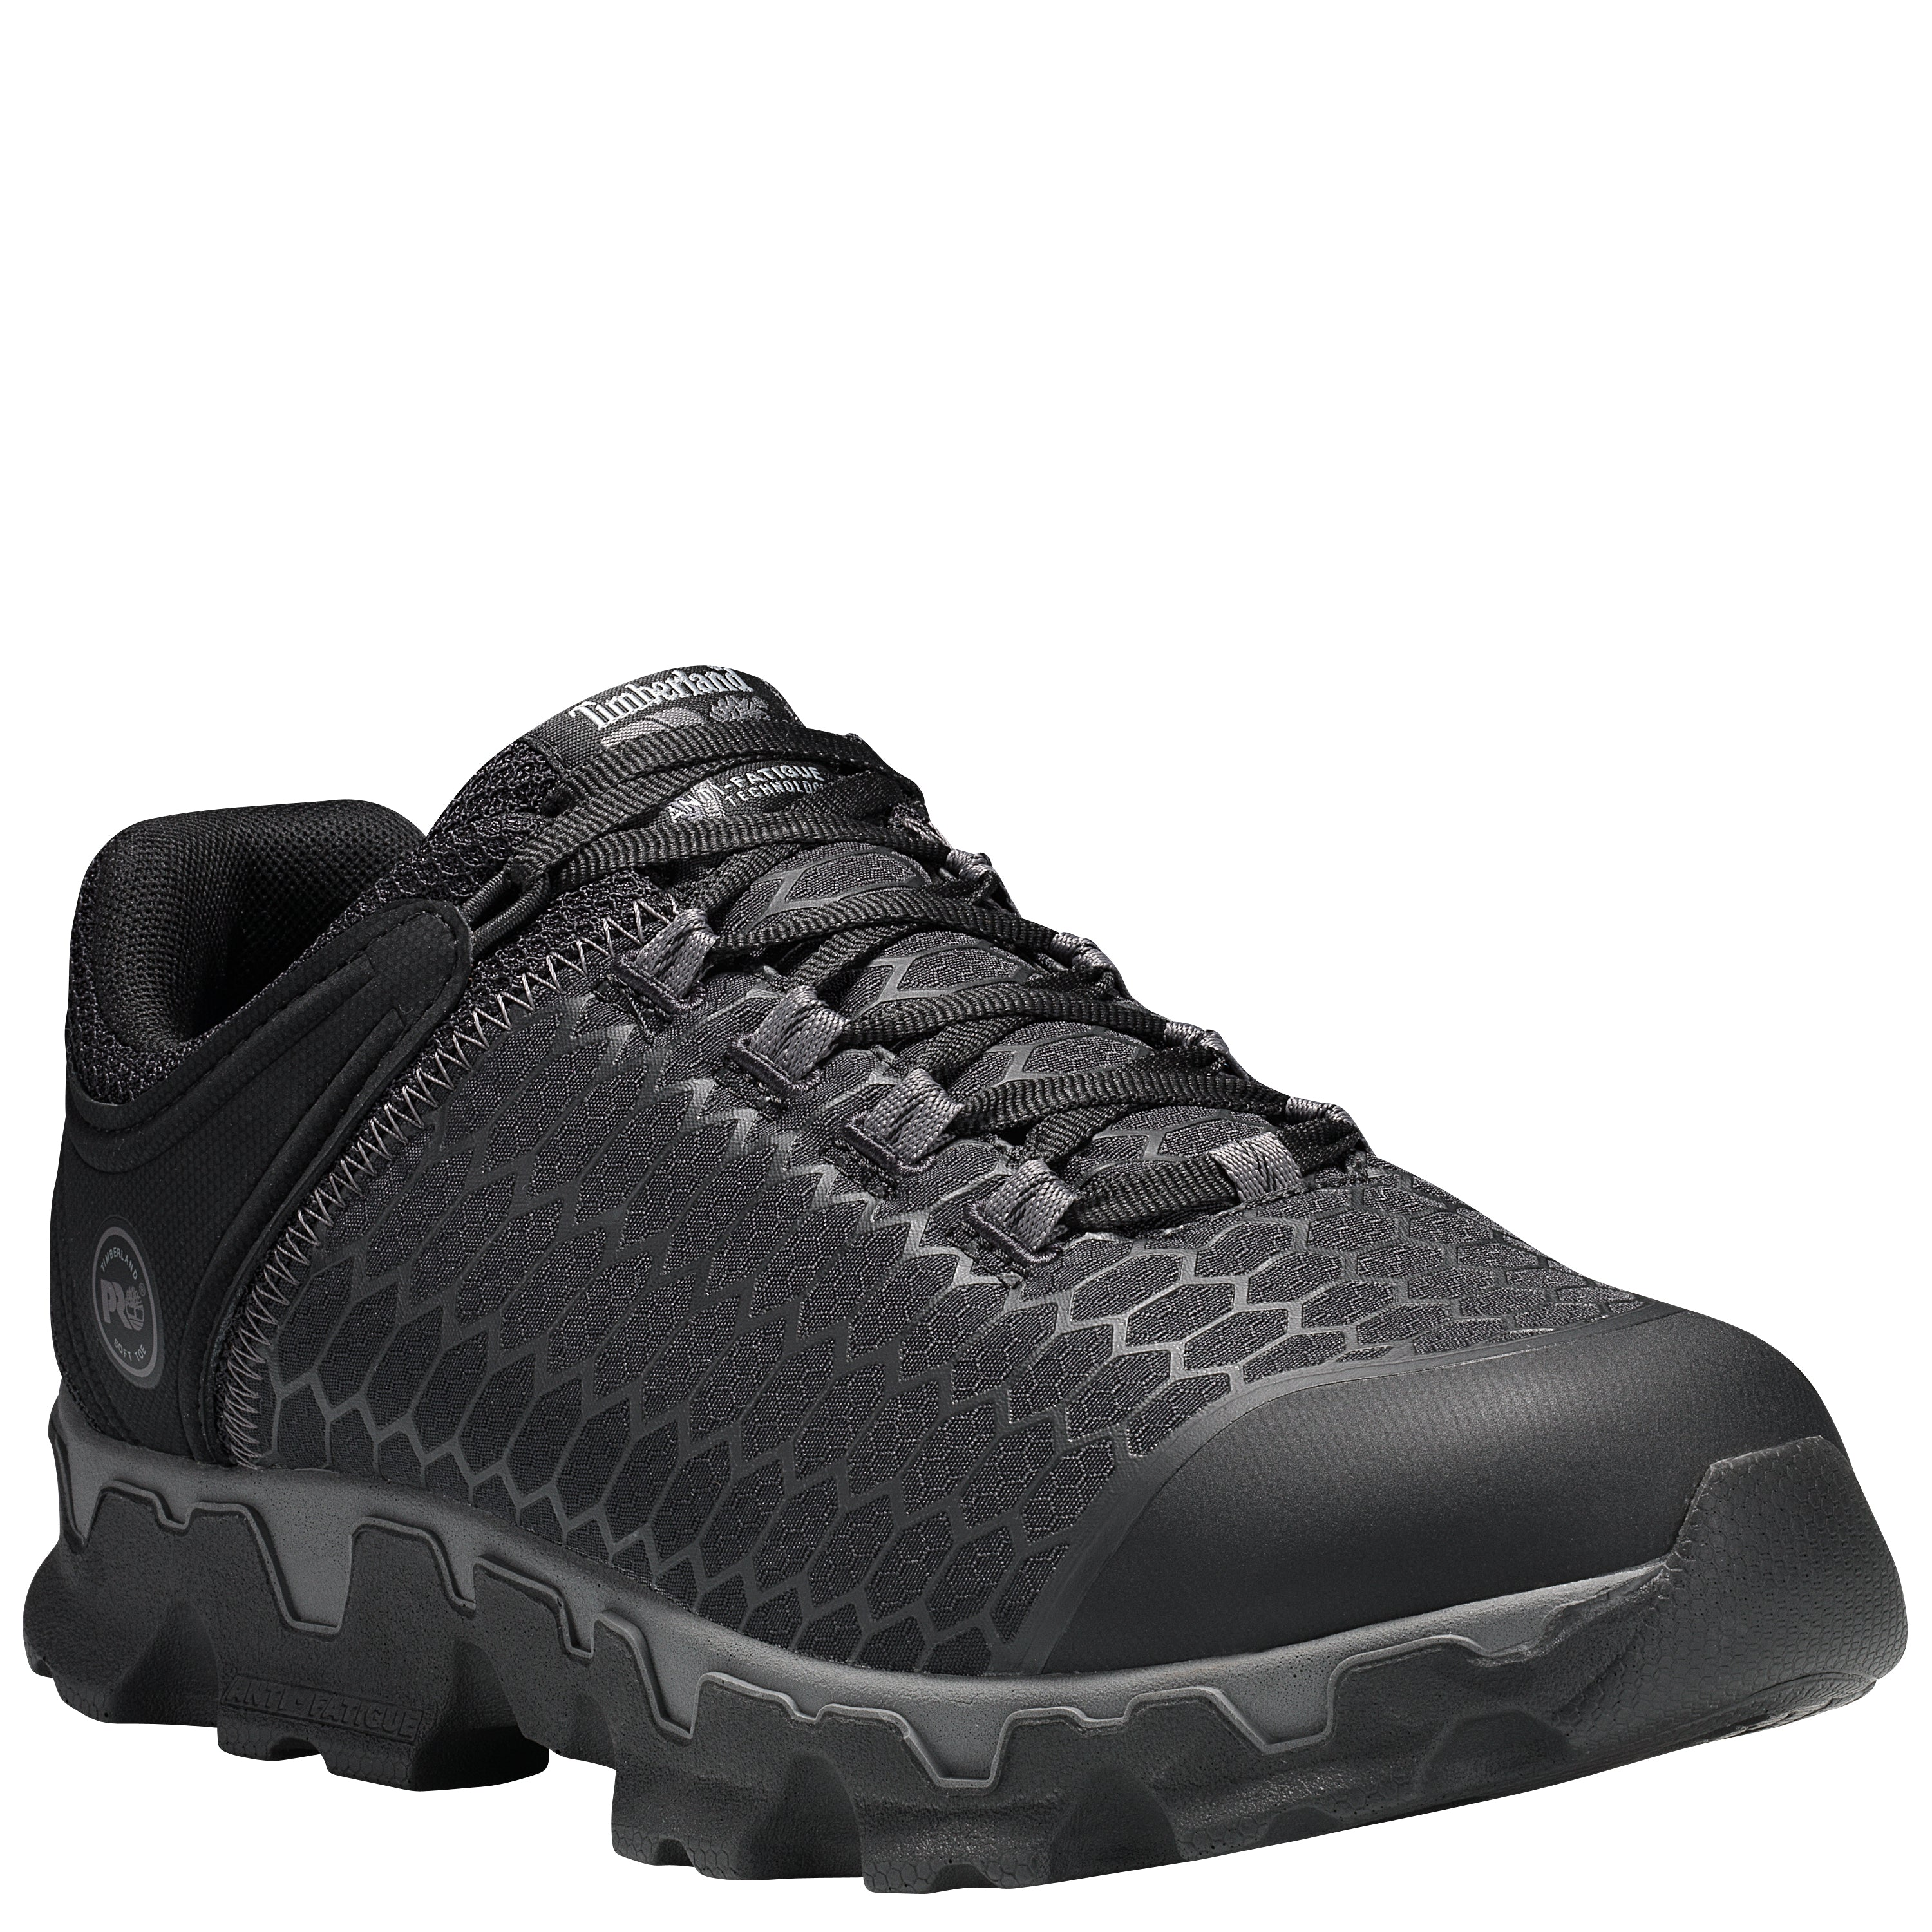 Timberland Pro PWRTRN SPORT SD SOFT - A1GVG